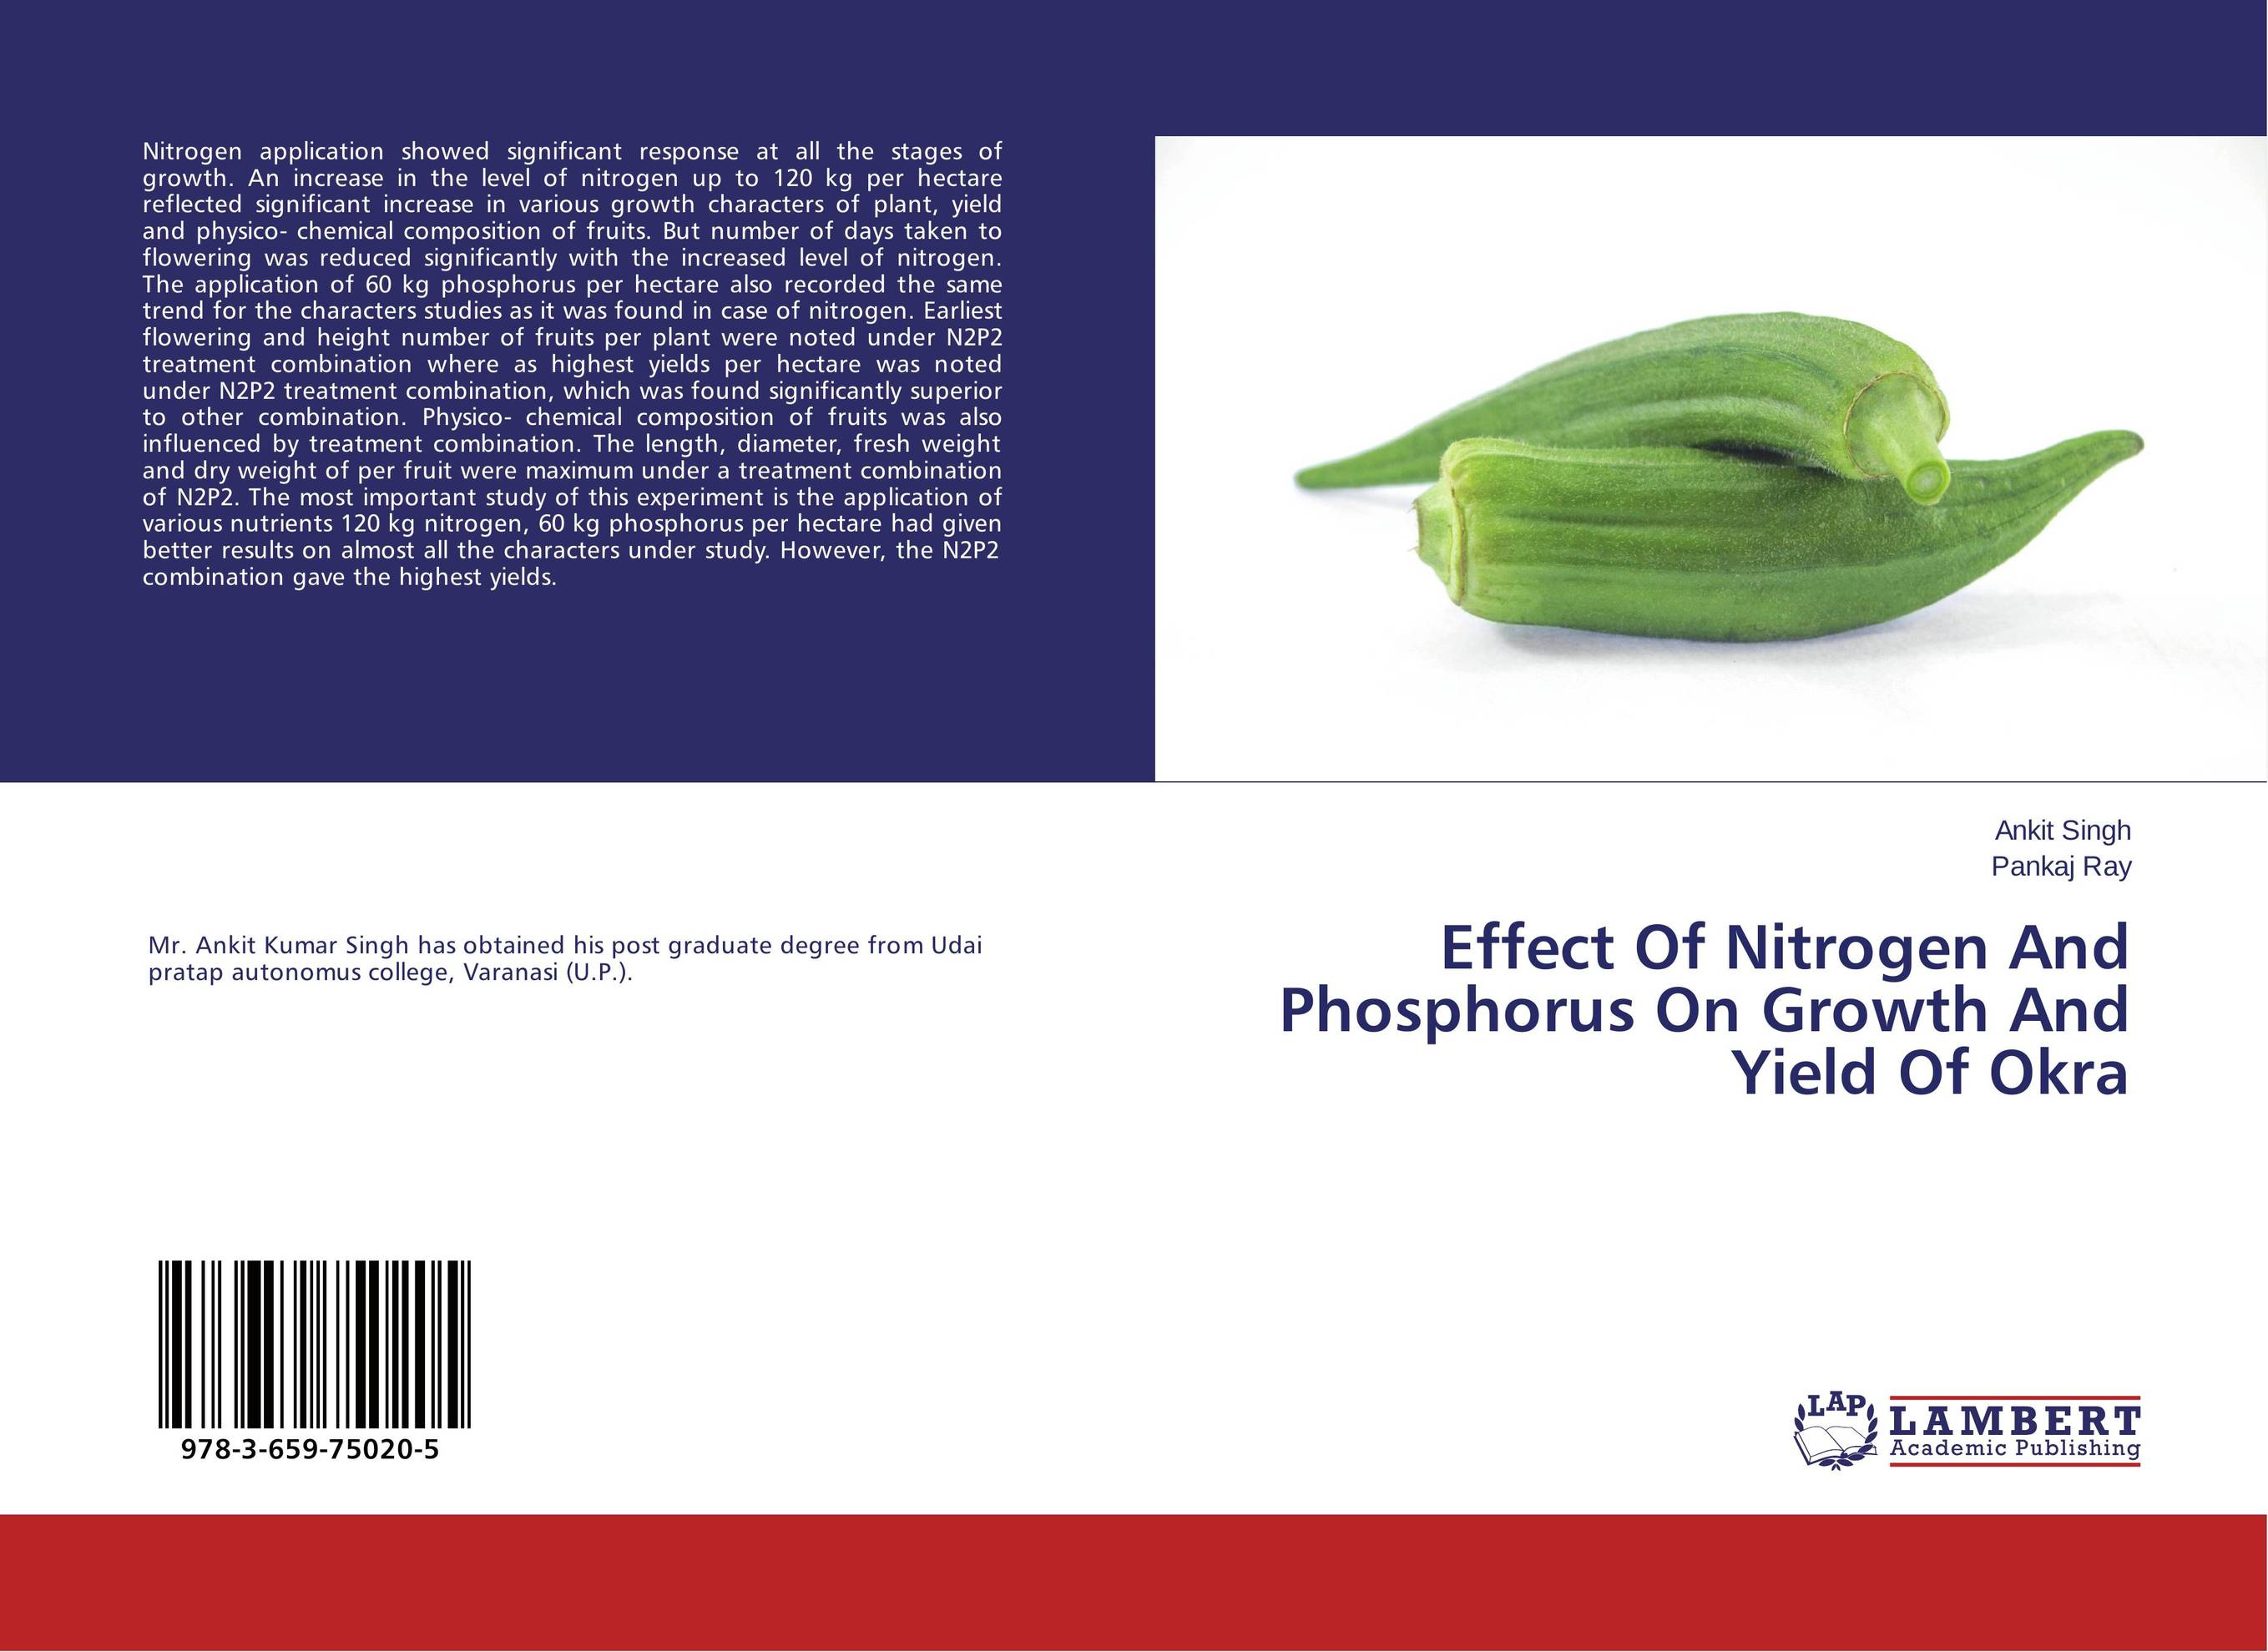 Effect Of Nitrogen And Phosphorus On Growth And Yield Of Okra cleto namoobe and rajender kumar nanwal growth yield and quality of sorghum as influenced by nitrogen levels